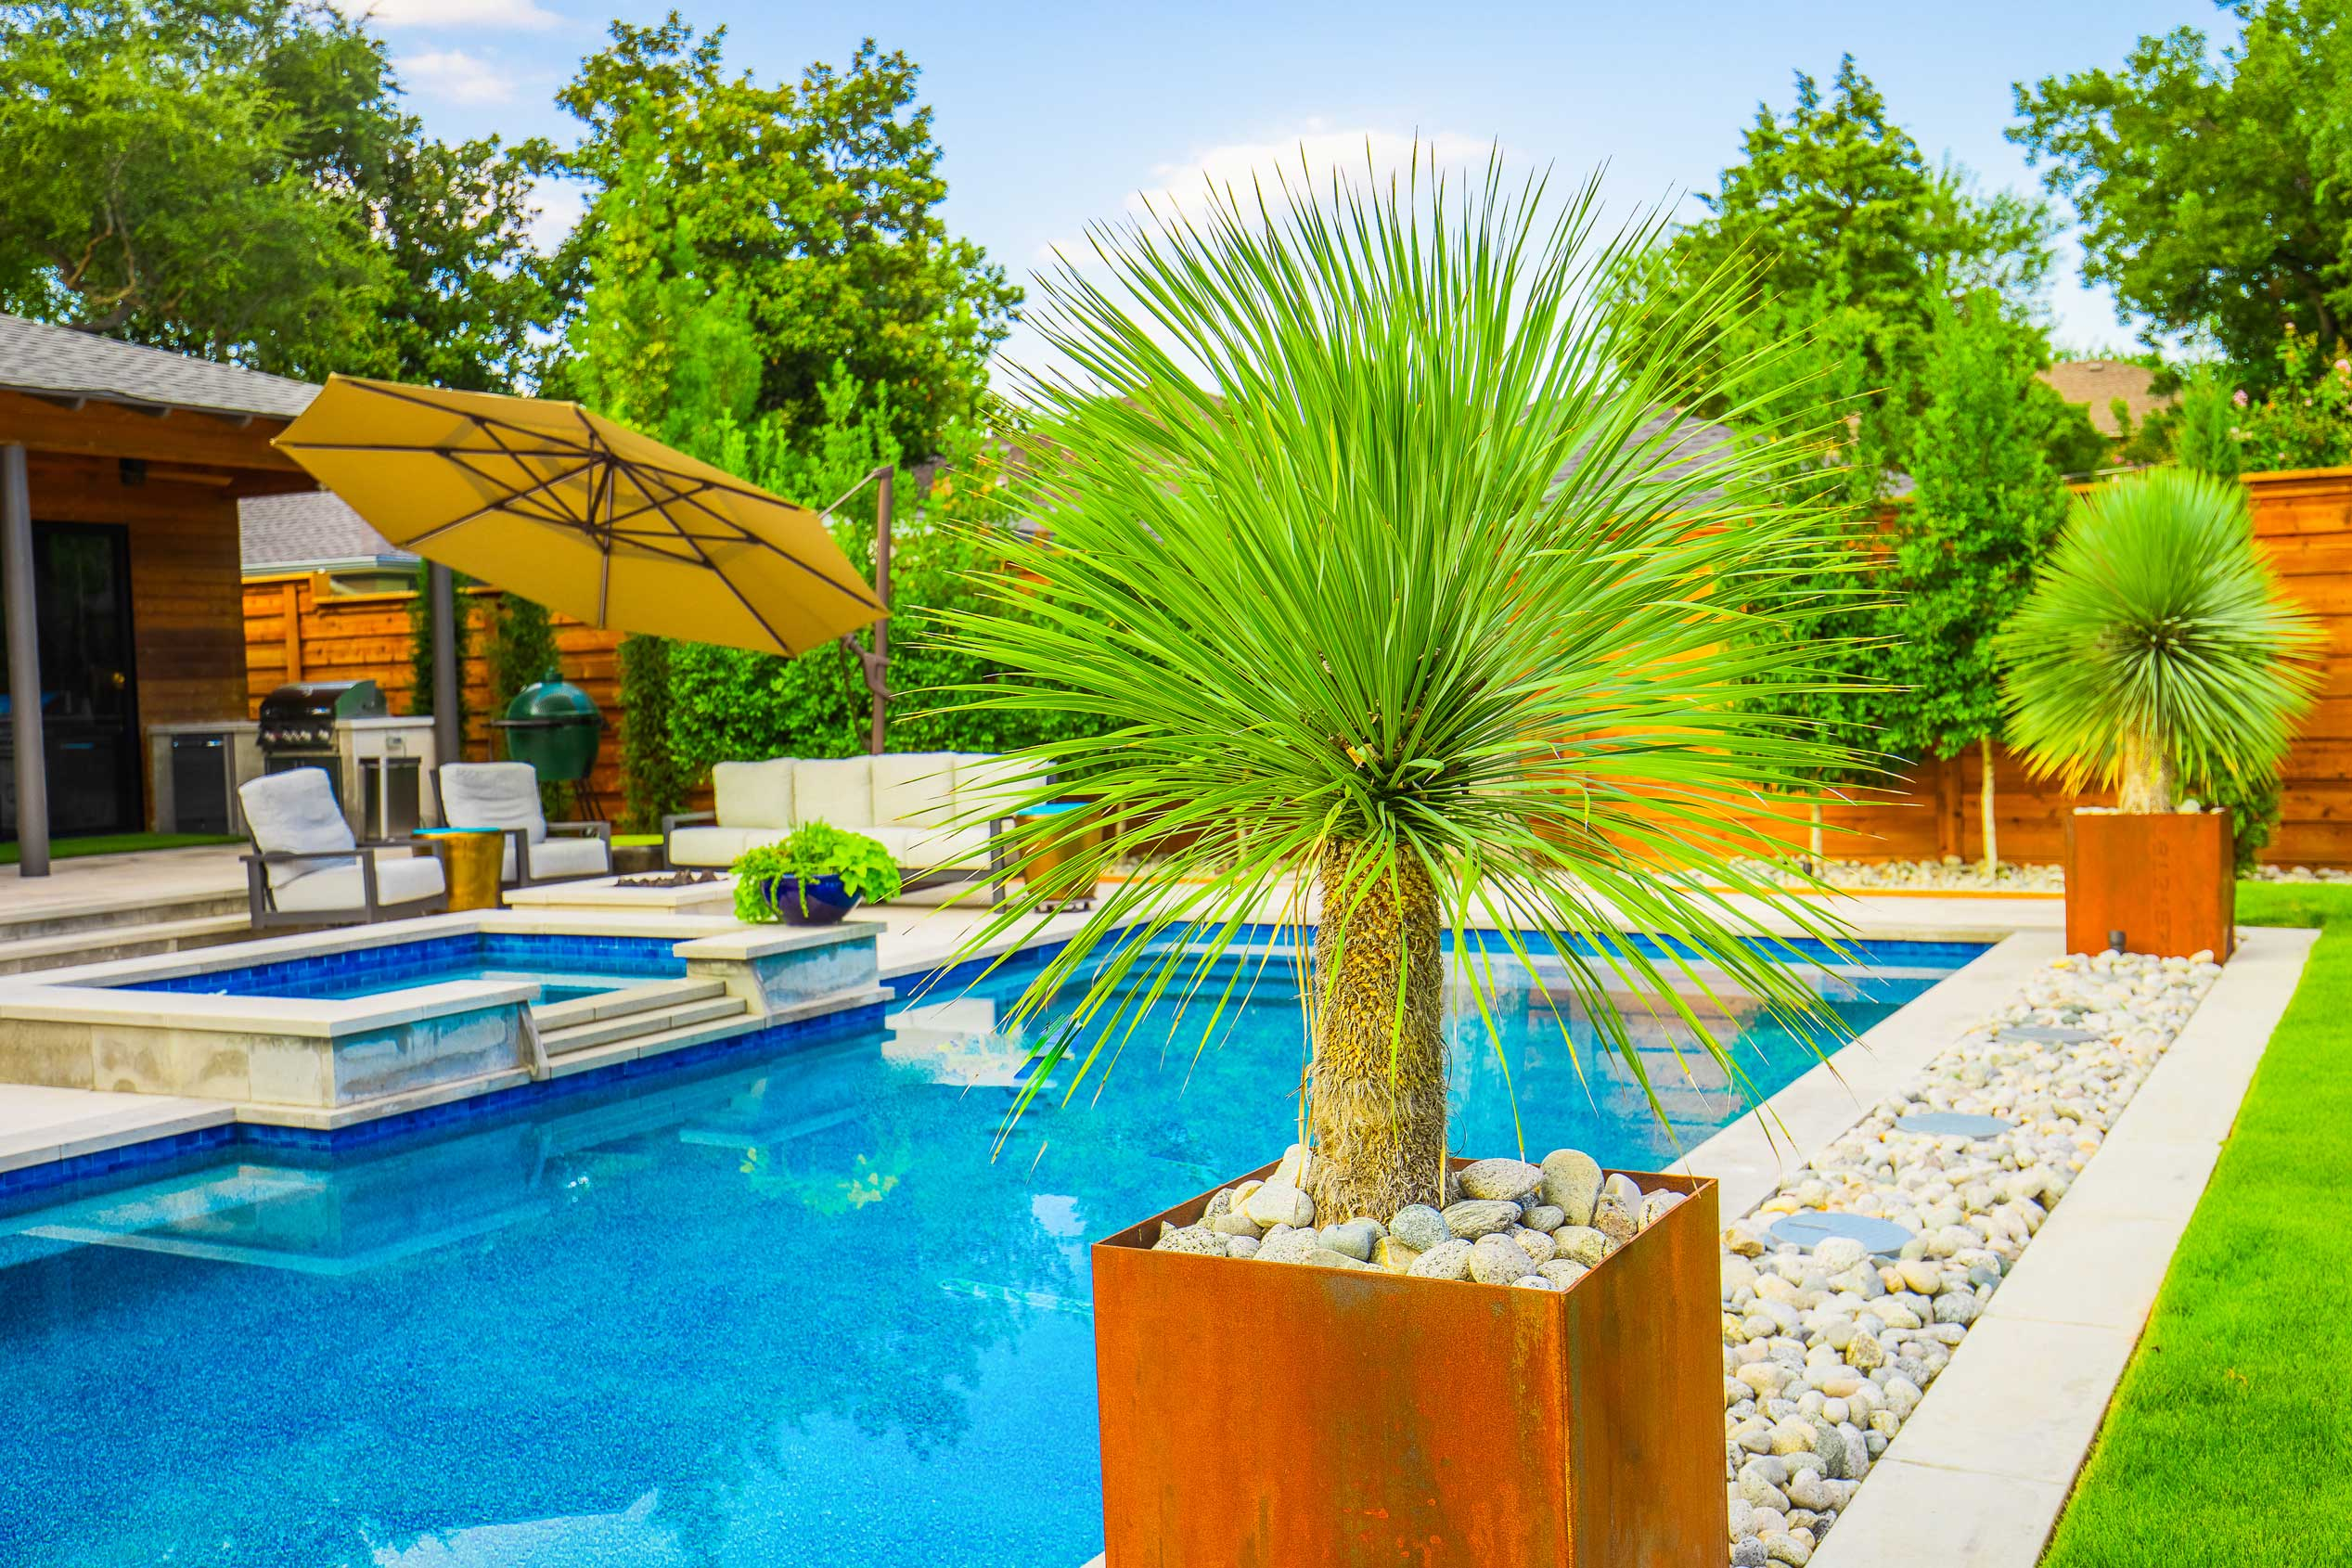 richardson-texas-pool-landscaping